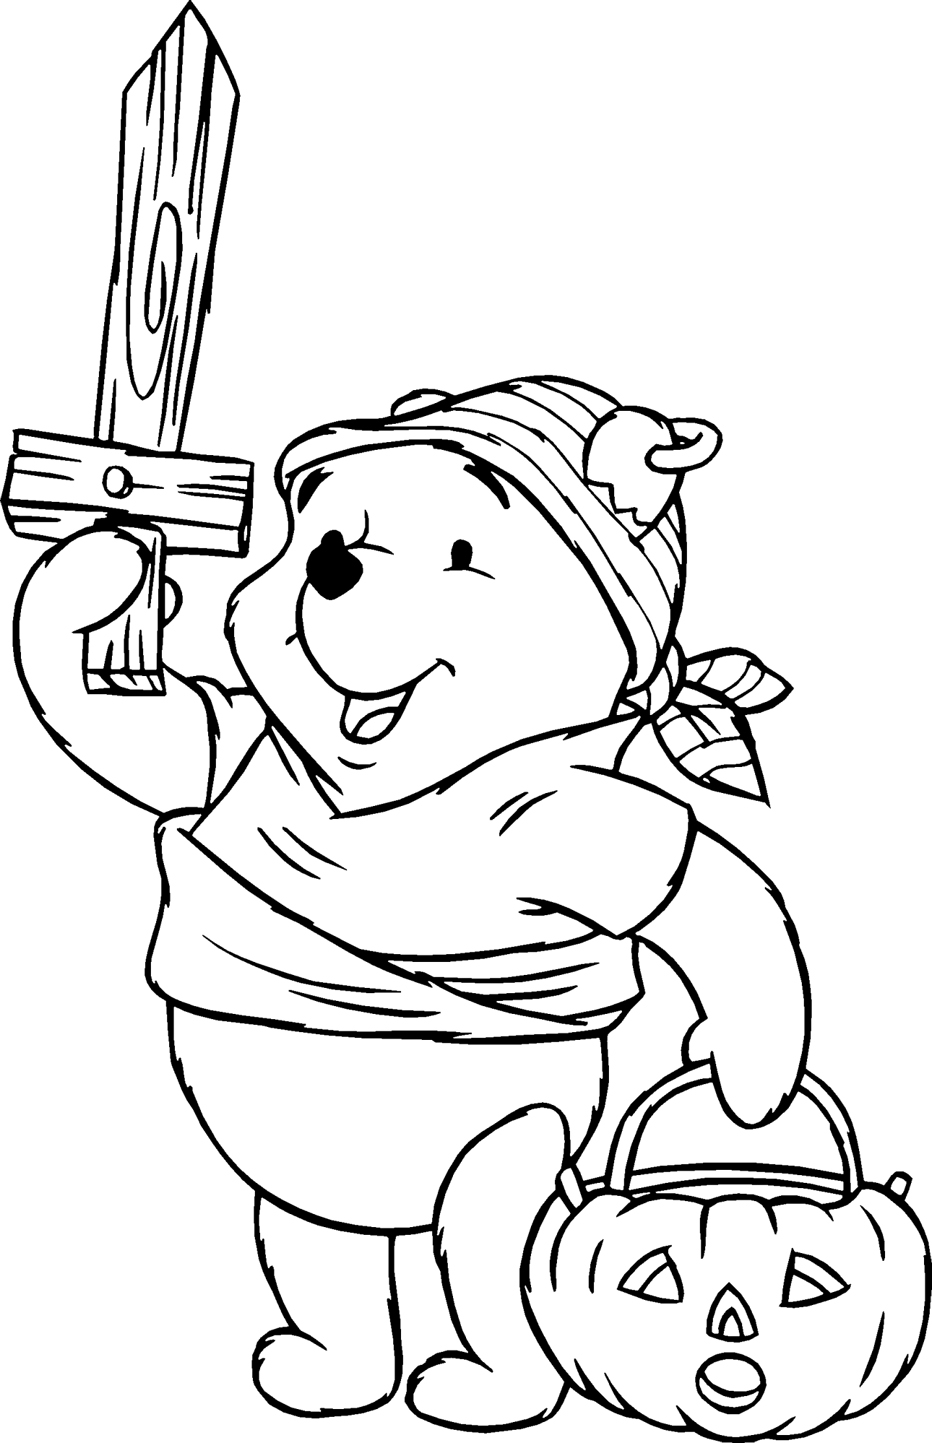 932x1443 Free Printable Winnie The Pooh Coloring Pages For Kids Pooh Bear